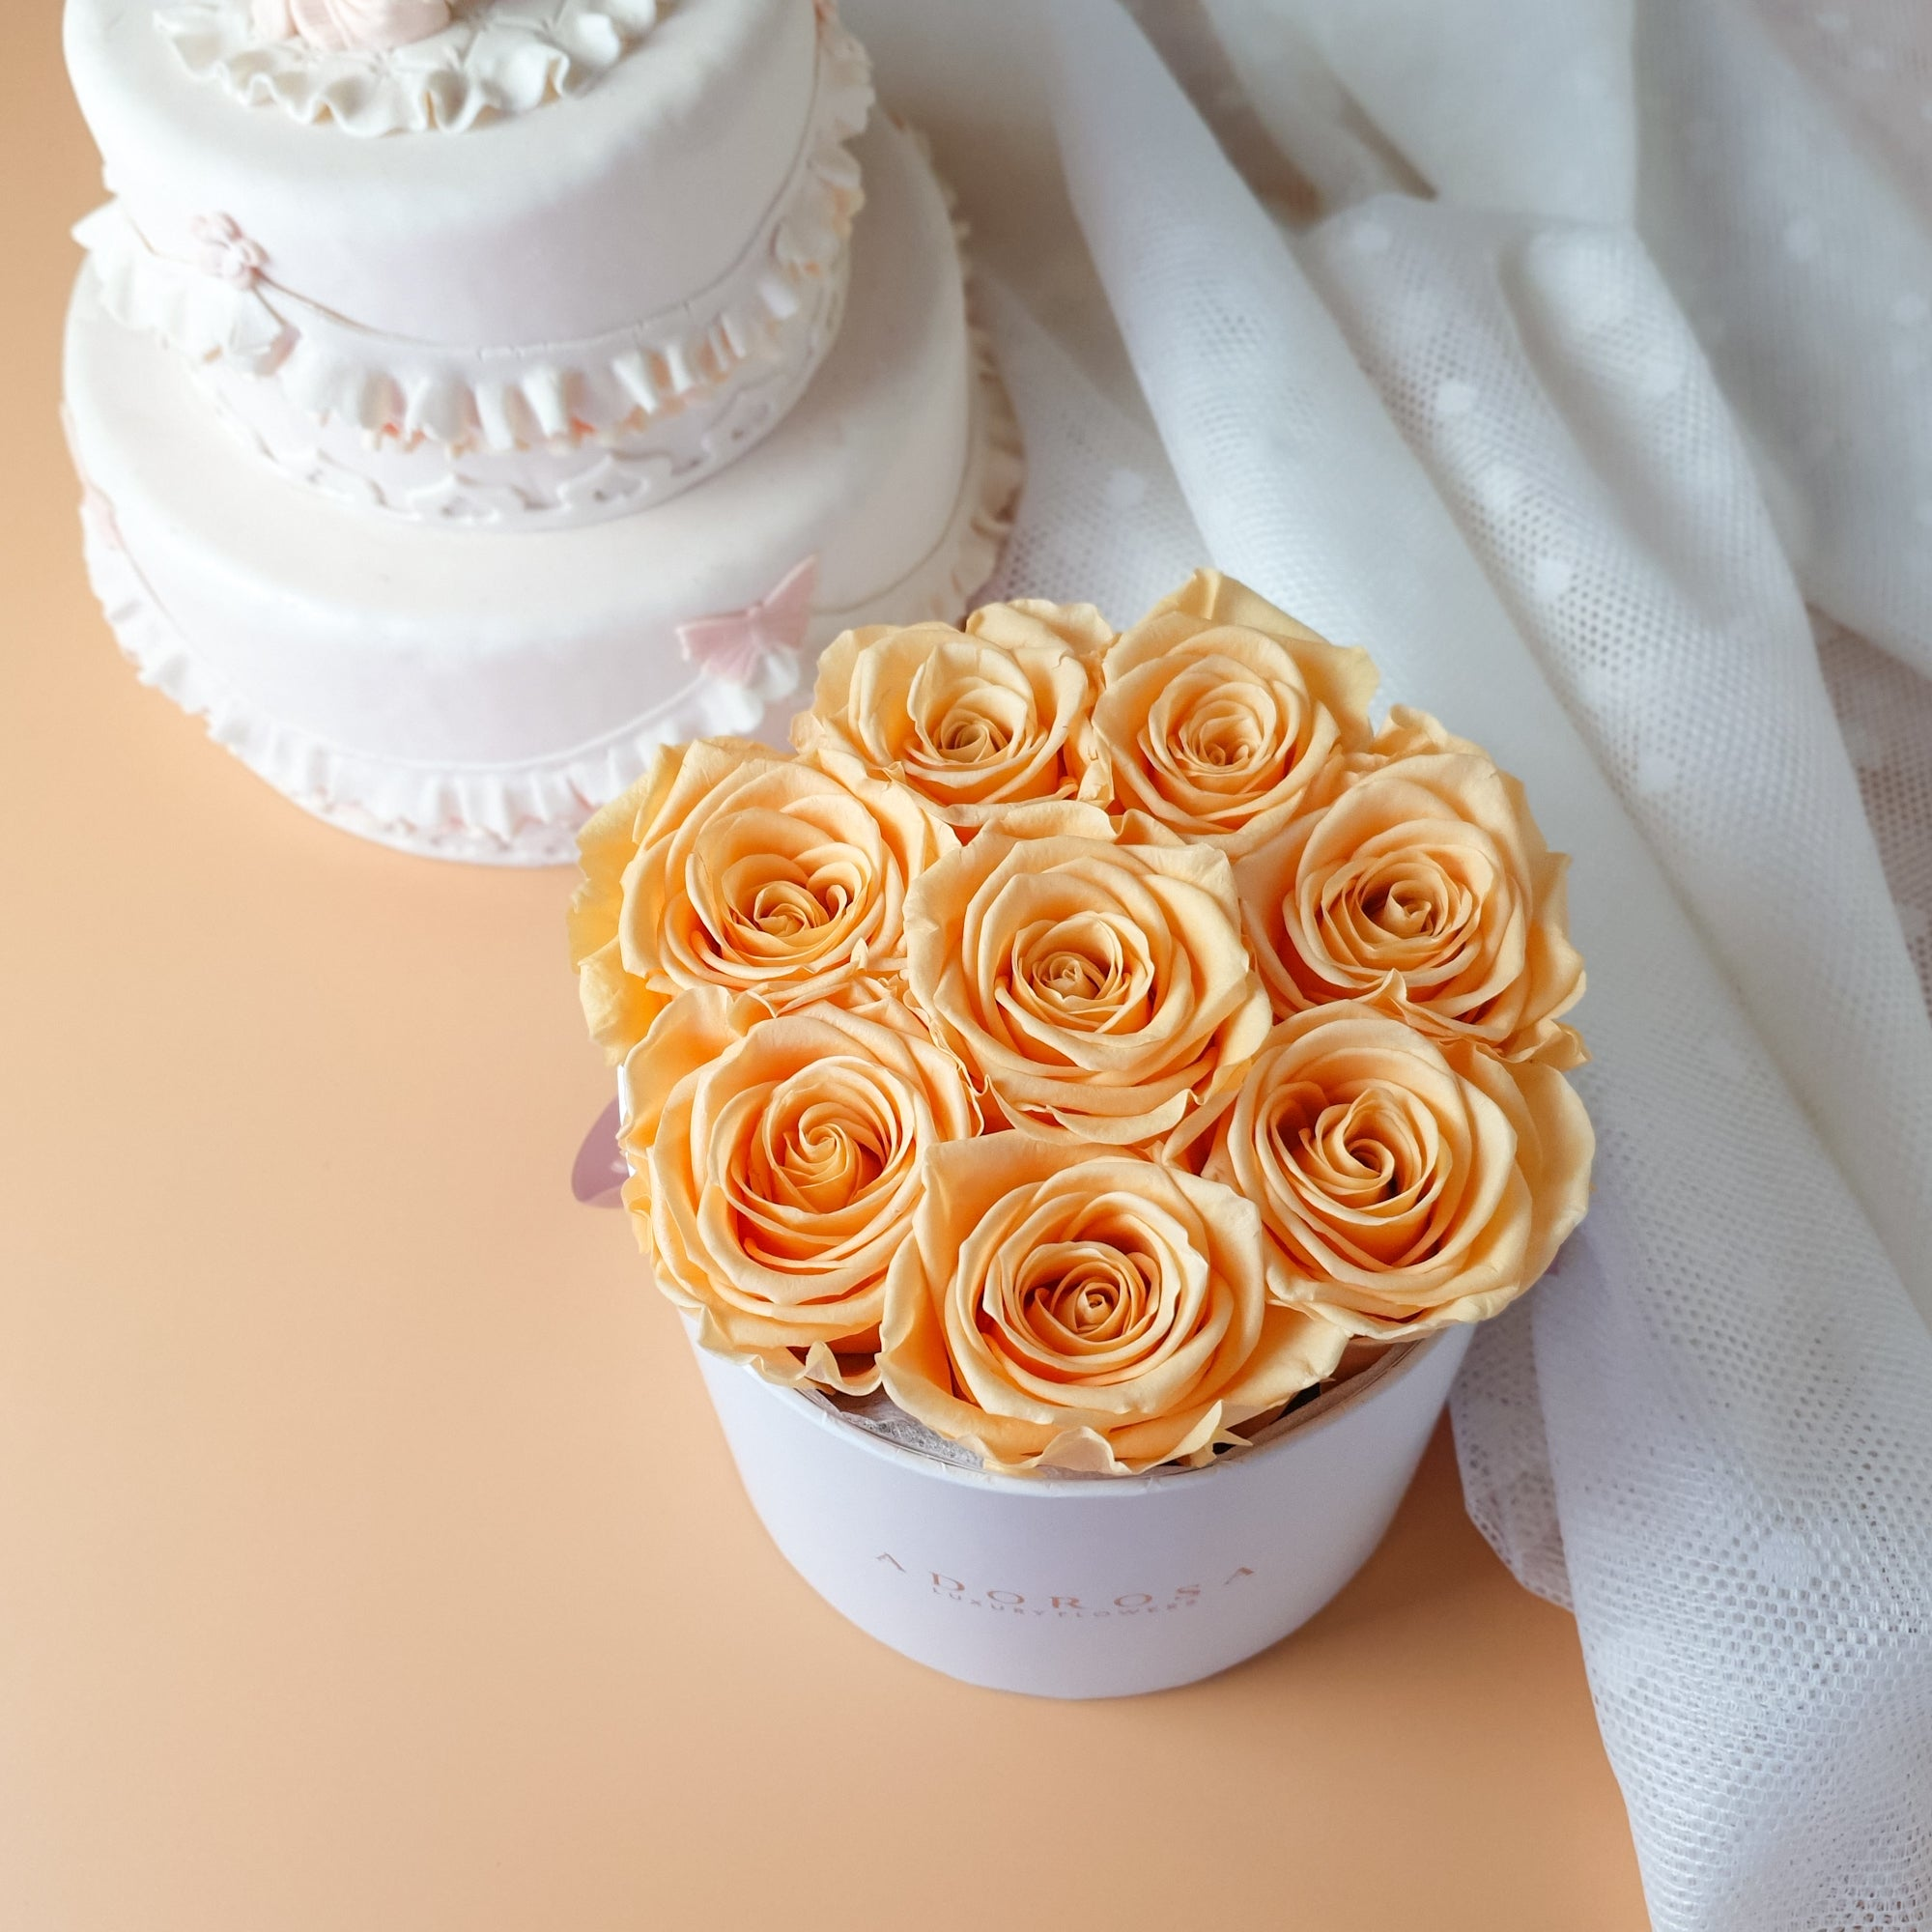 preserved roses, preserved flowers, luxury rose delivery Sydney, rose box Sydney